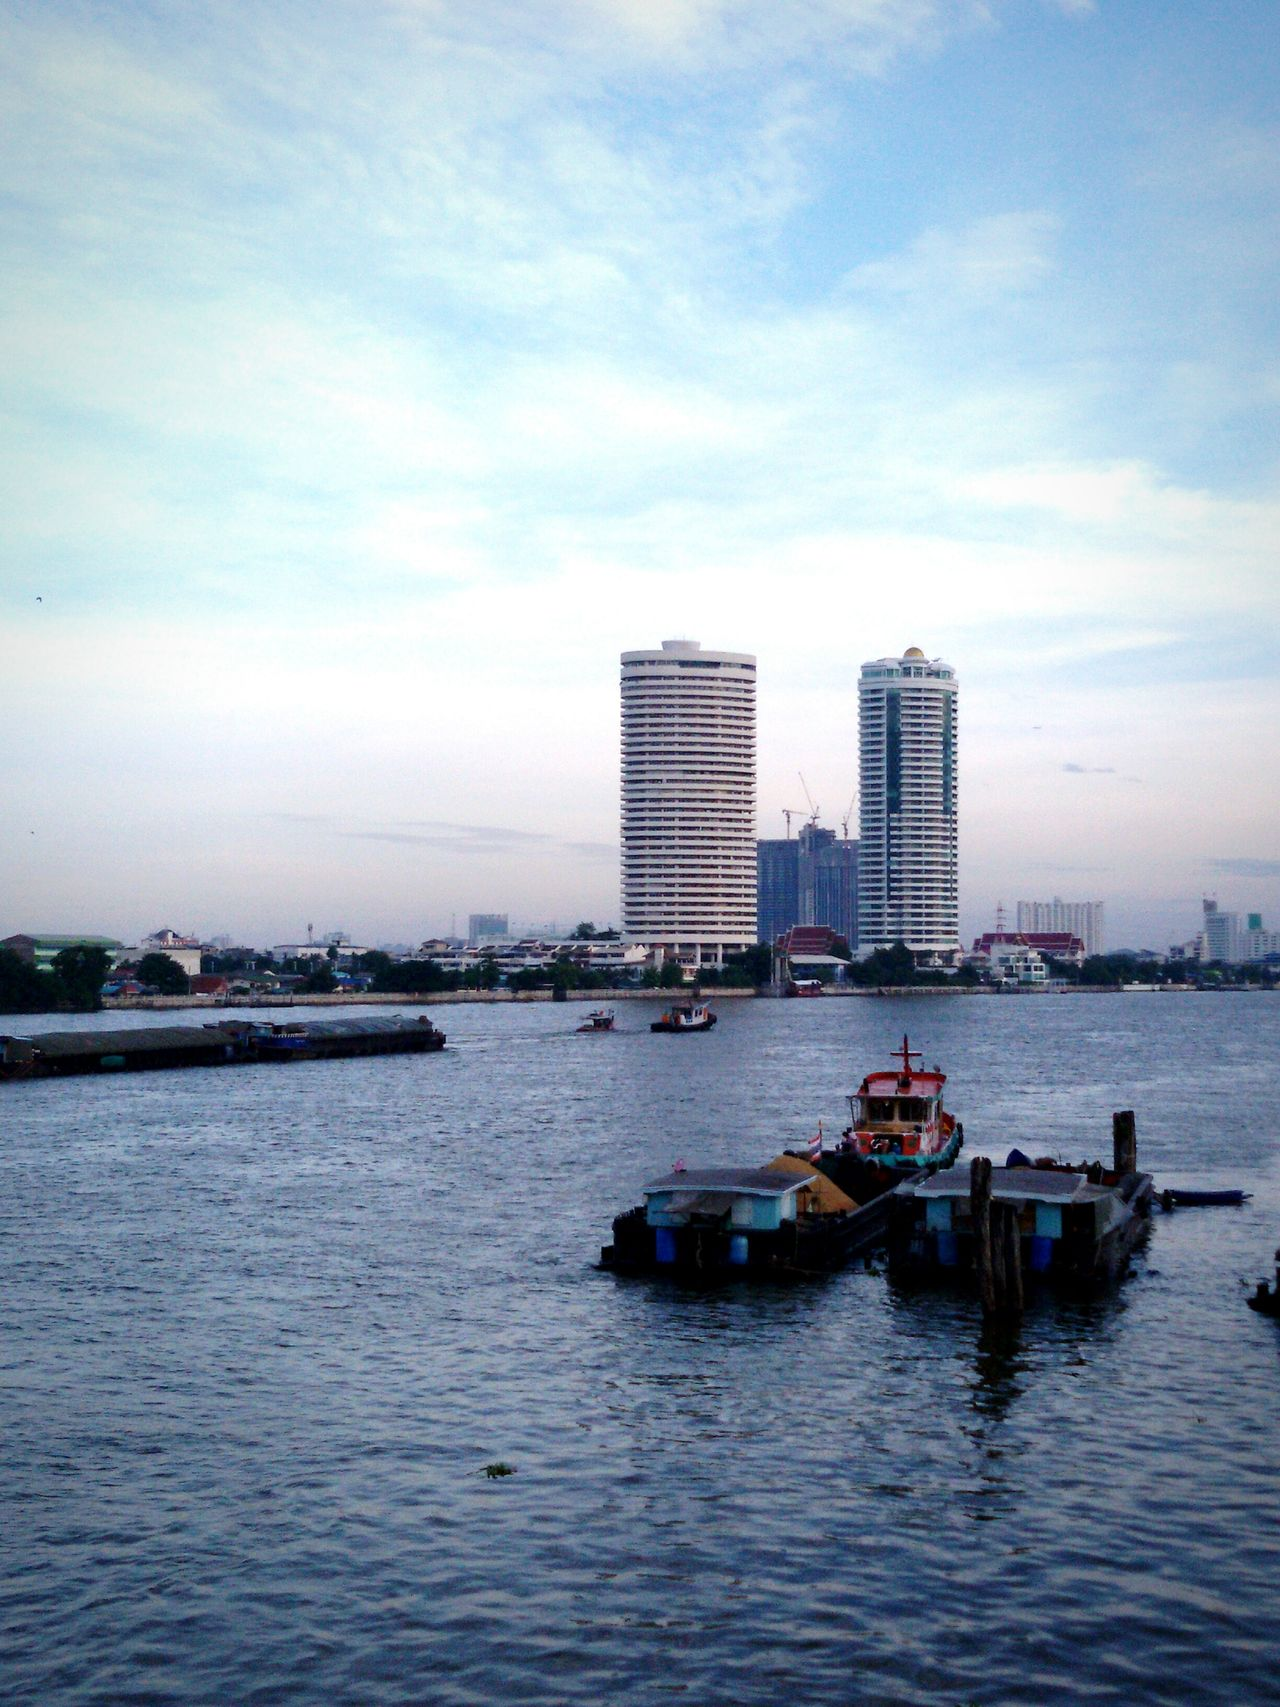 Chao phraya river: Architecture Cloud - Sky Water Outdoors Nautical Vessel No People Day Skyscraper Sky Cityscape .